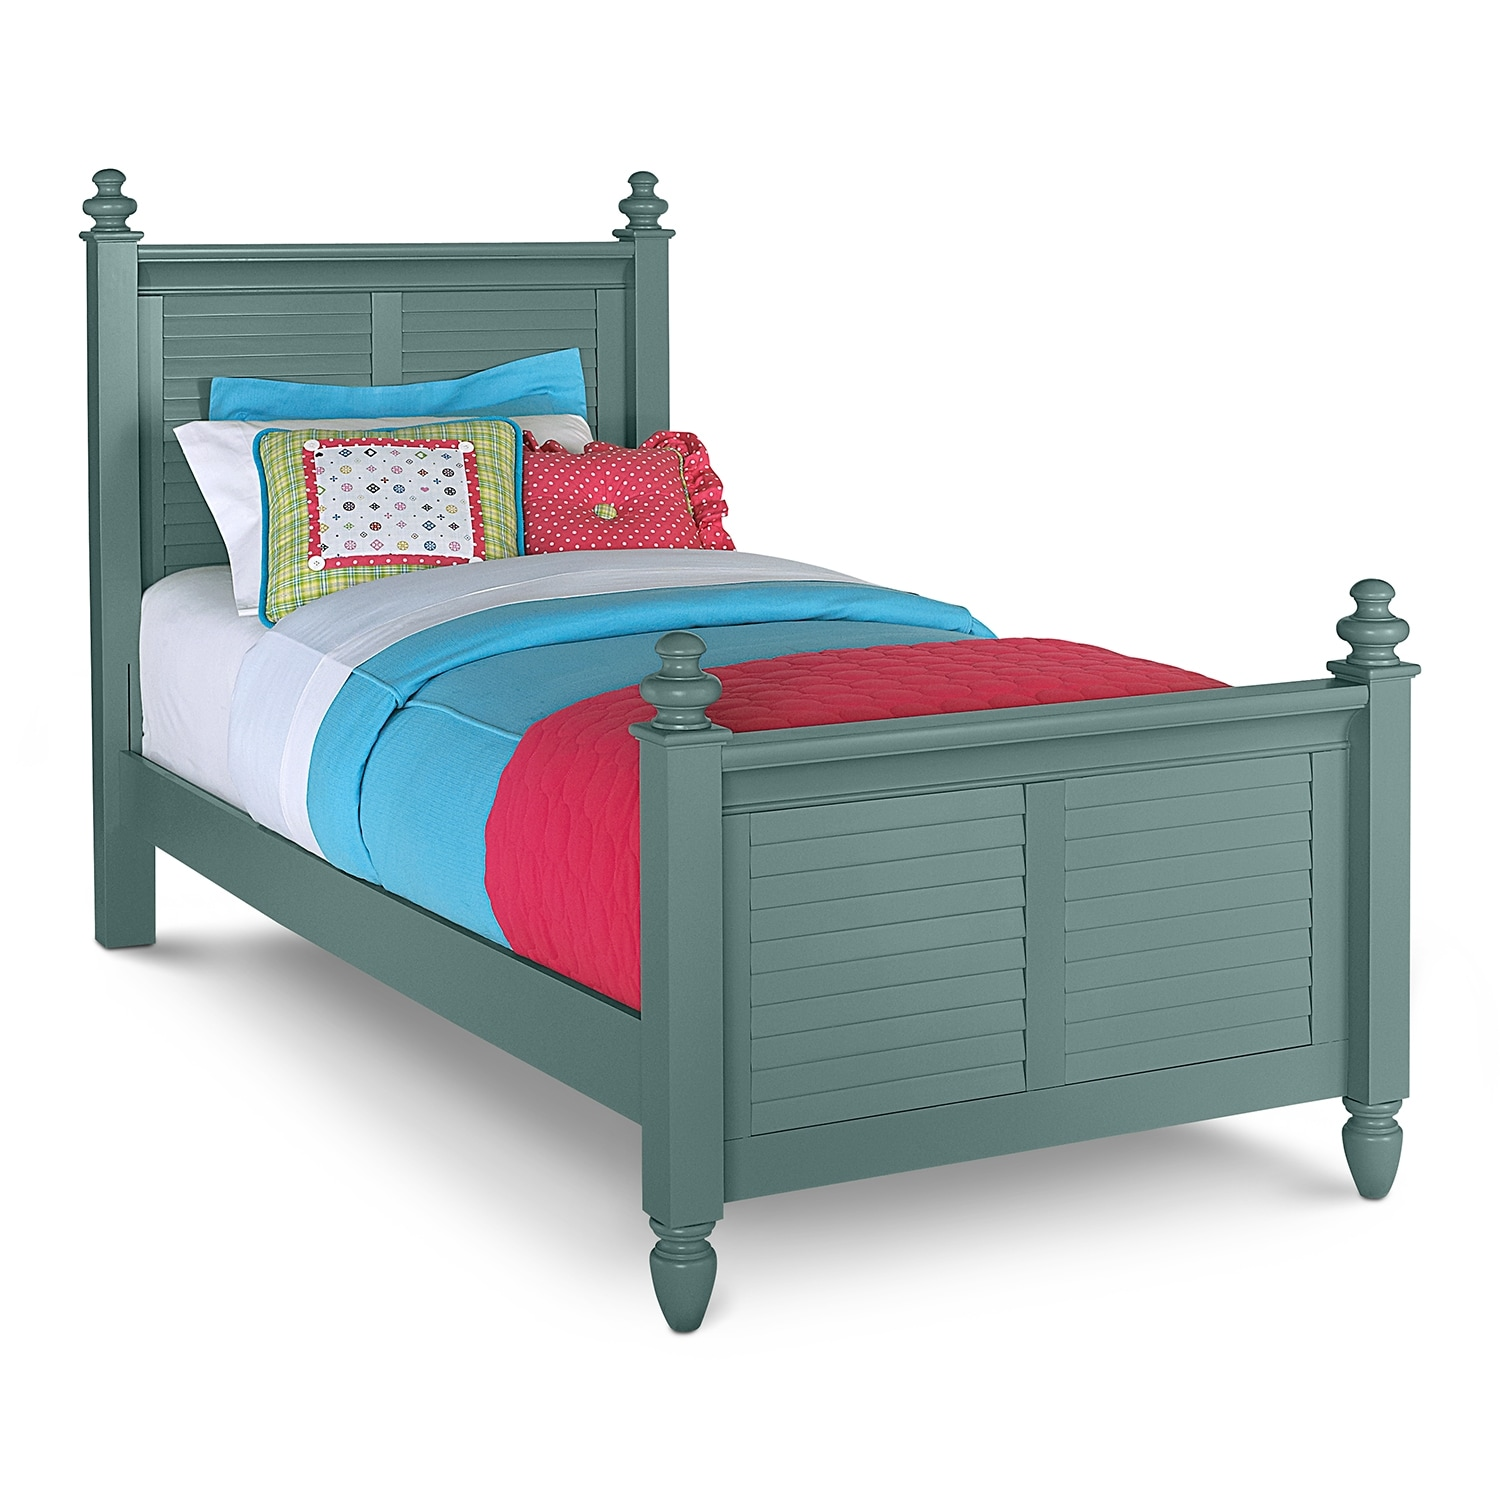 Seaside Twin Bed - Blue | Value City Furniture